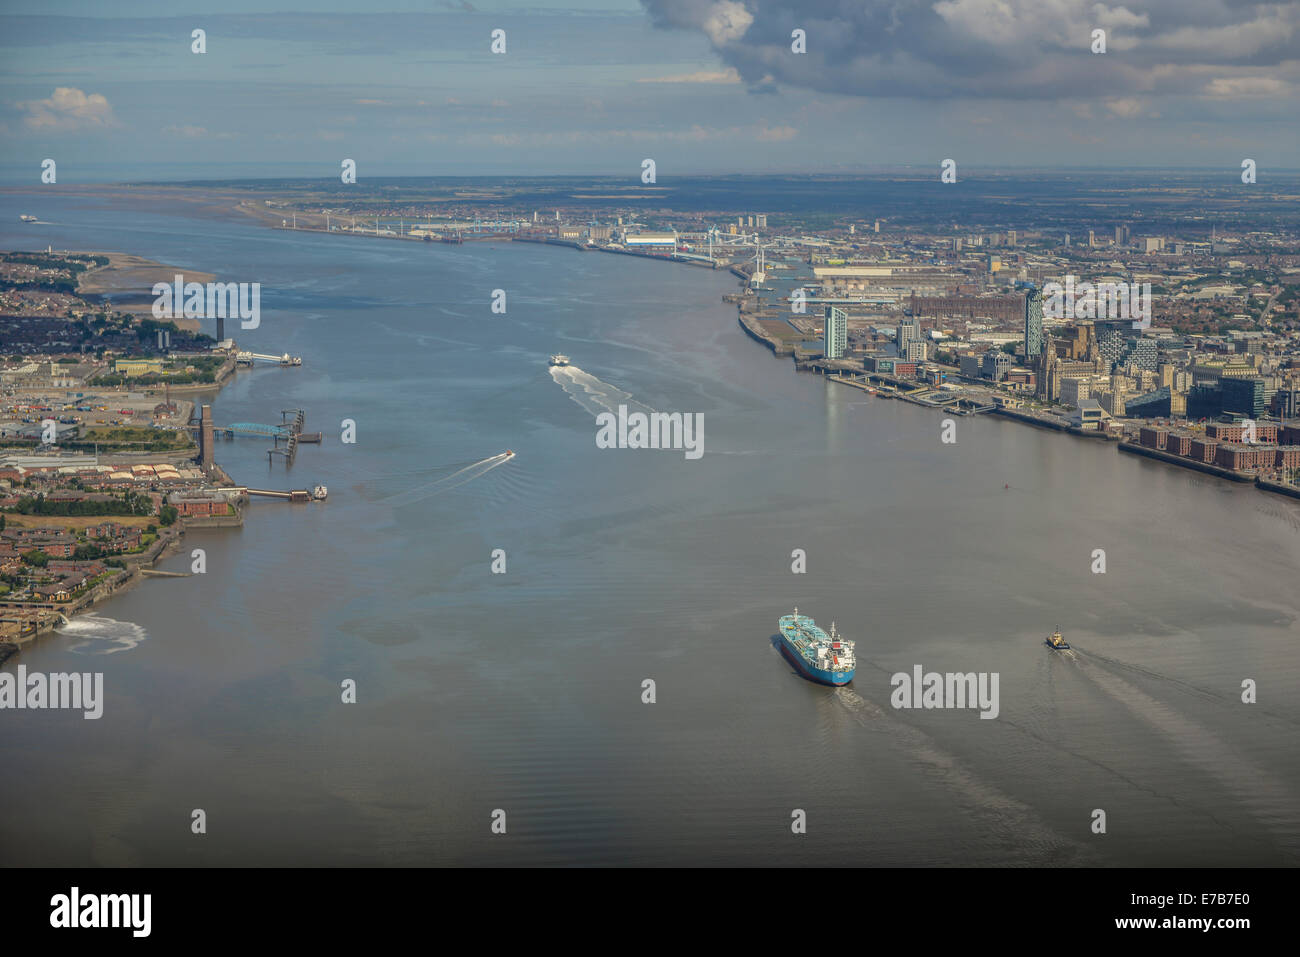 An aerial view of a bulk freighter in the River Mersey just off Birkenhead with the Irish Sea in the distance - Stock Image